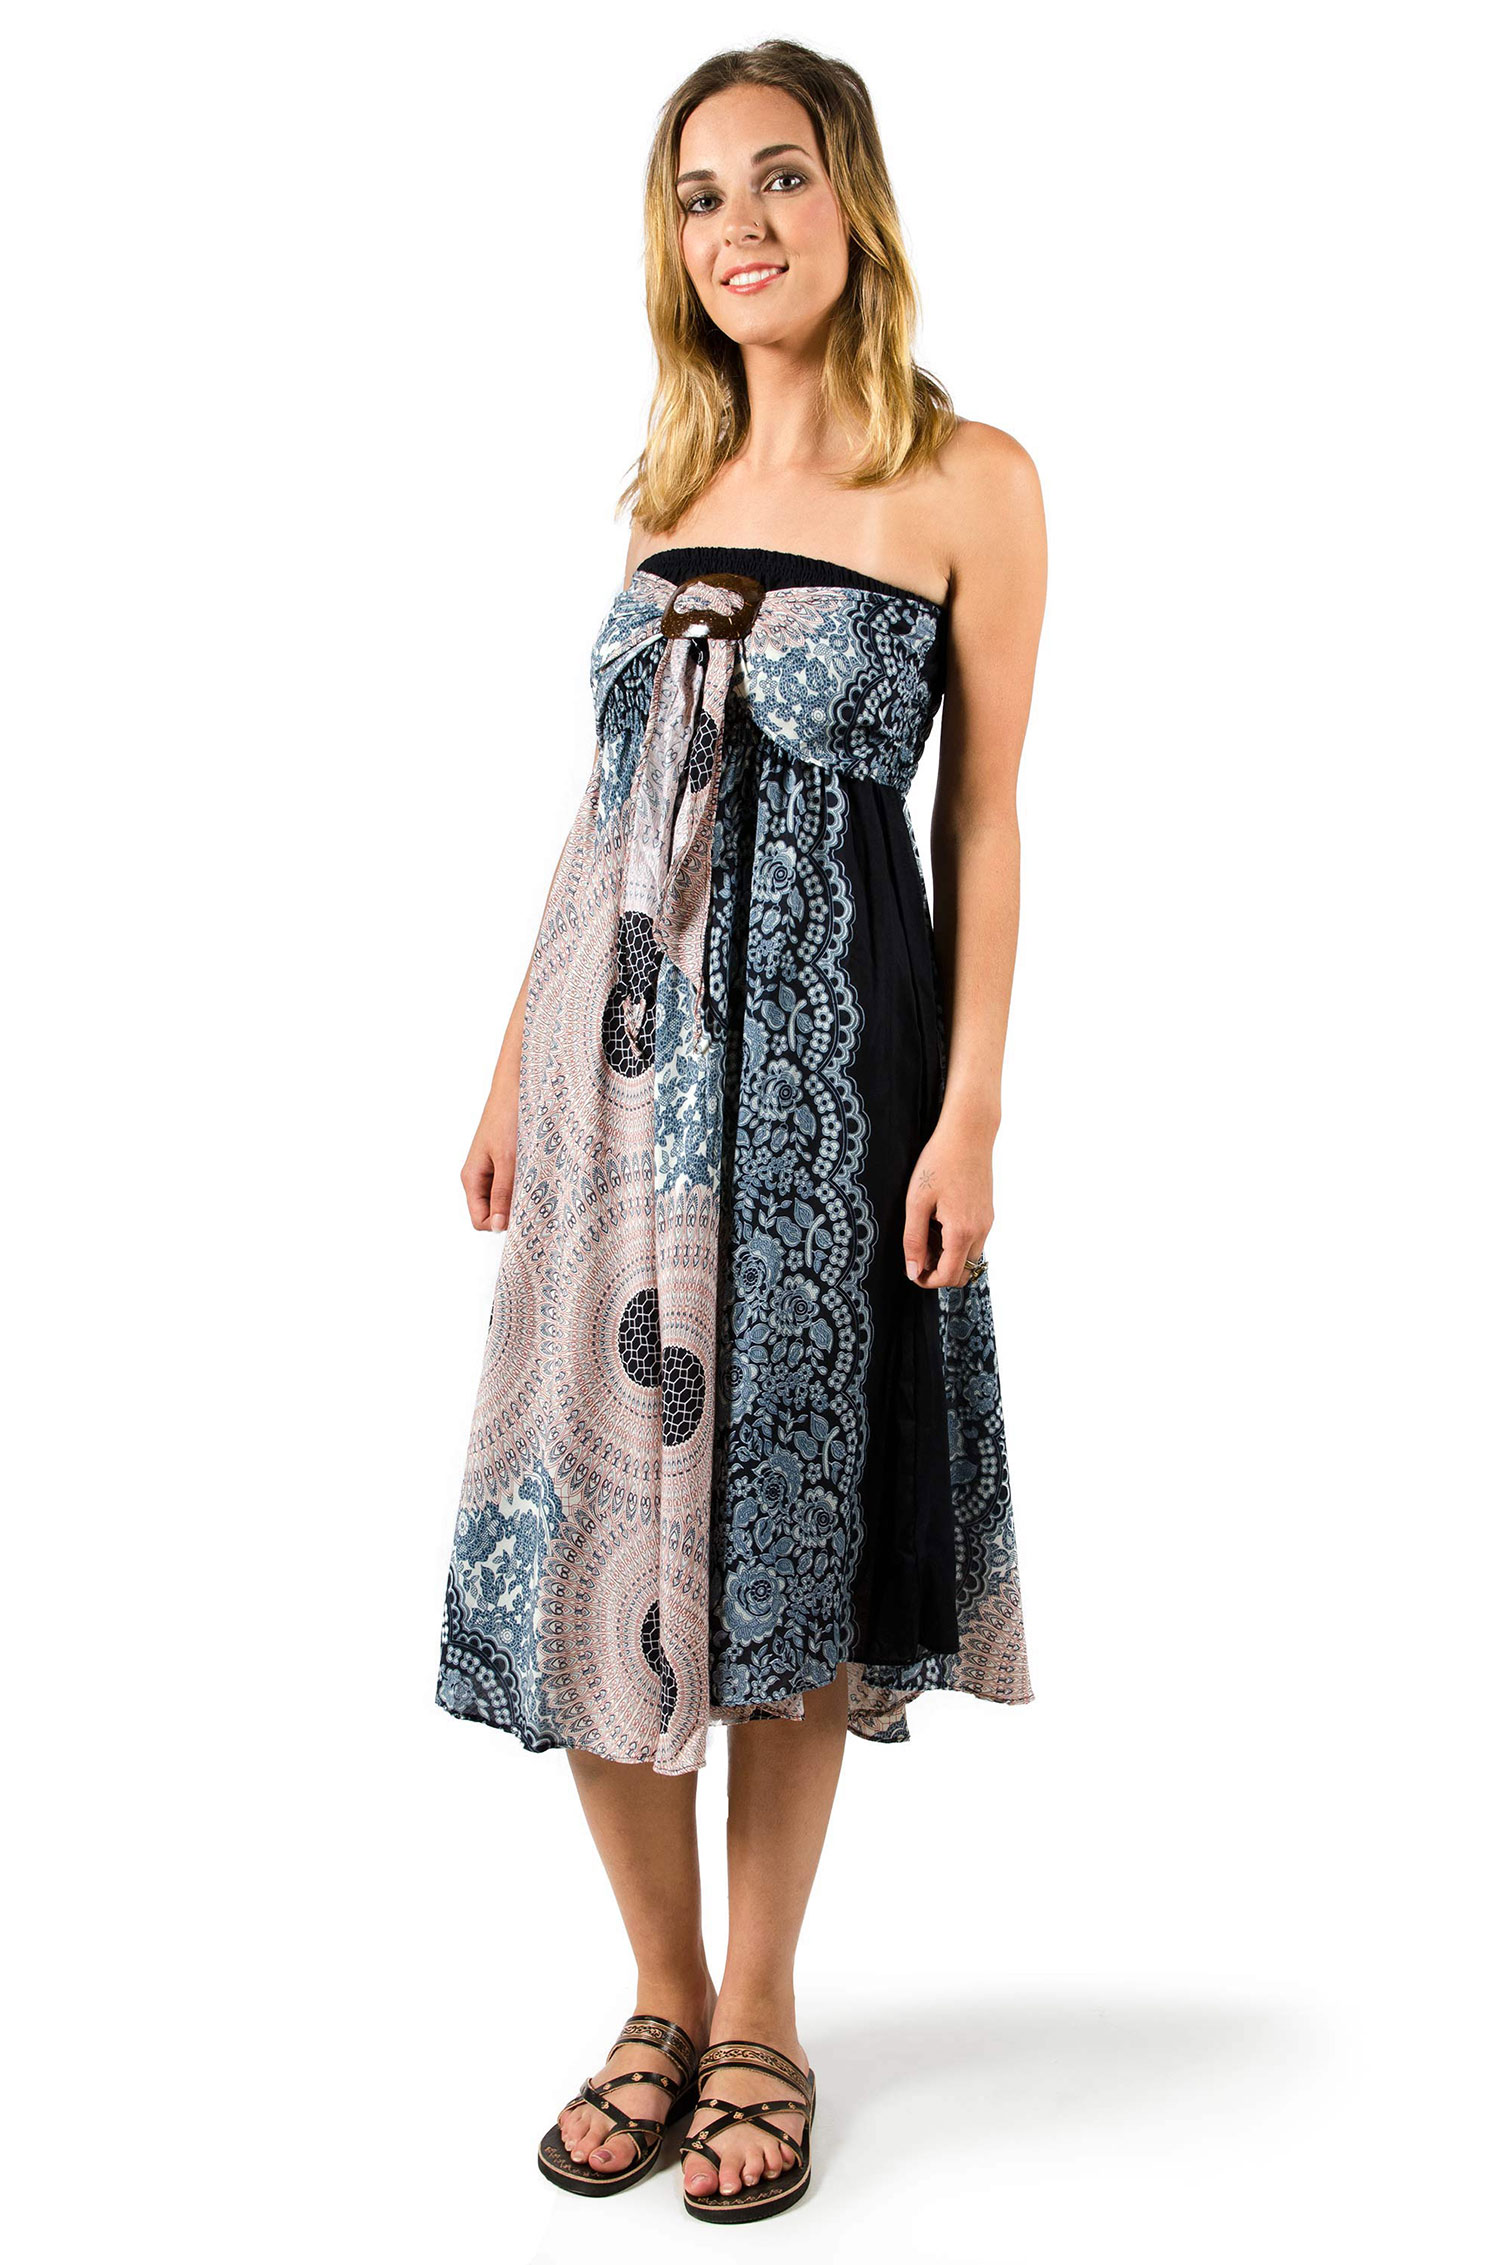 Convertible Dress / Skirt, Honeycomb print, Grey